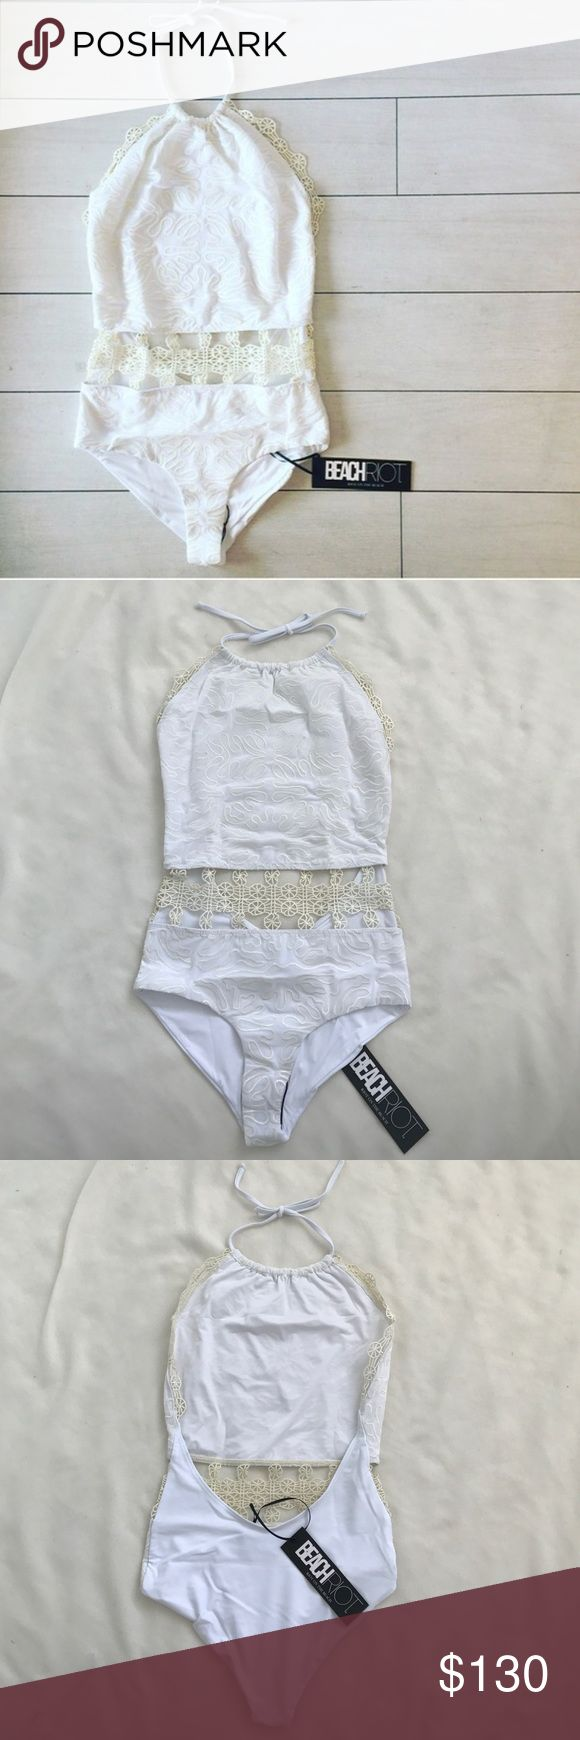 Brand new Beach riot swimsuit New with tags For Love and Lemons Swim One Pieces